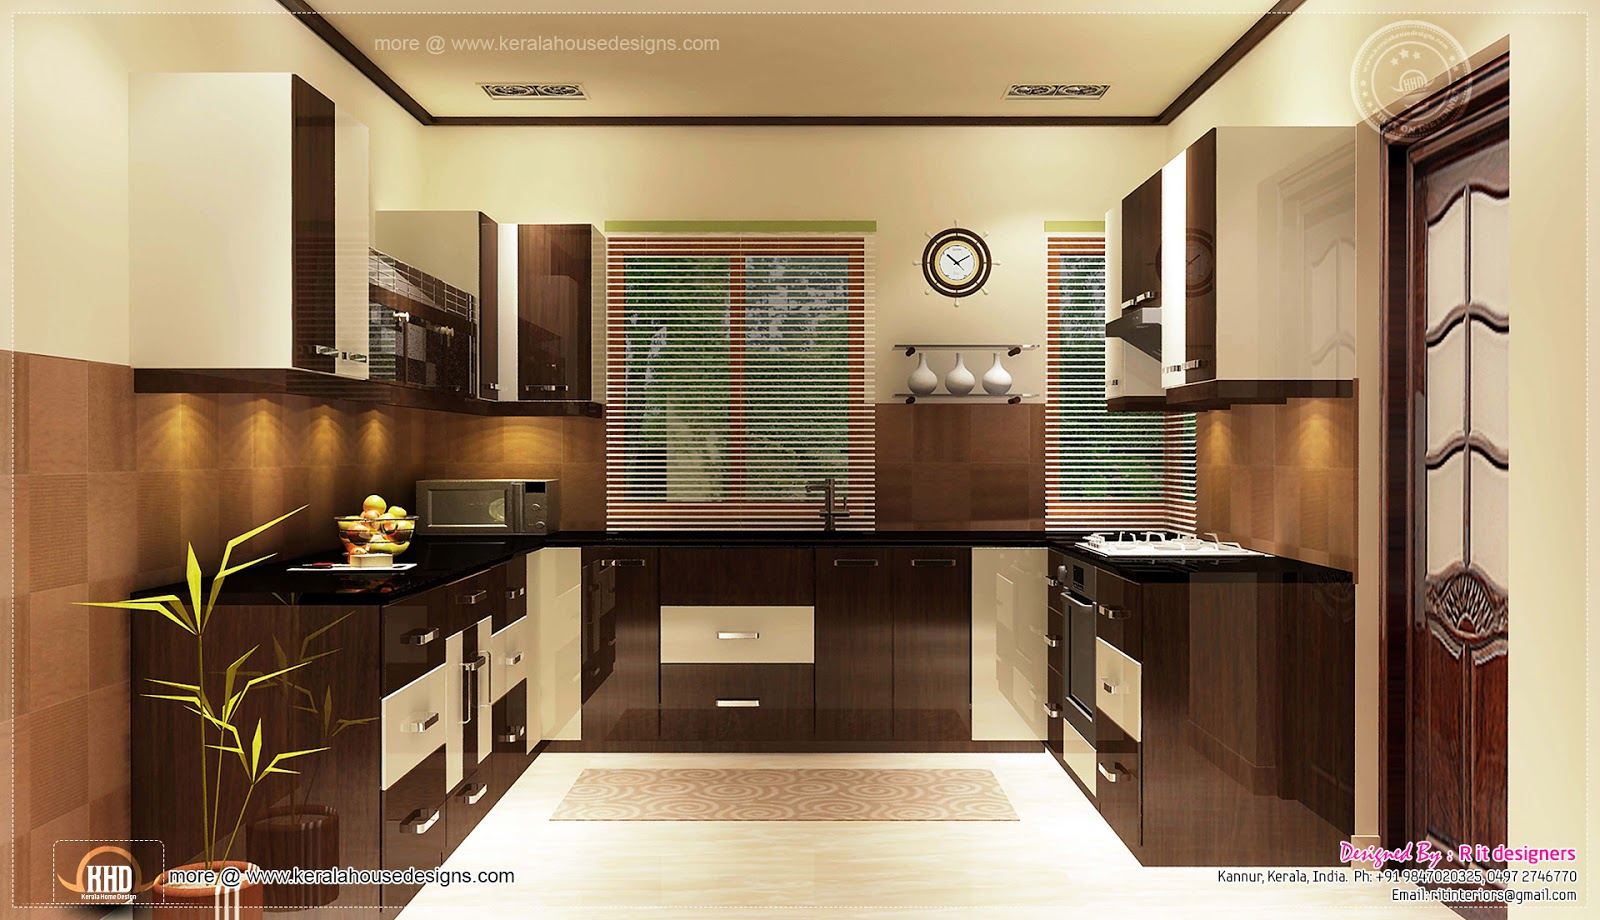 Home interior designs by rit designers kerala home for Kerala model interior designs